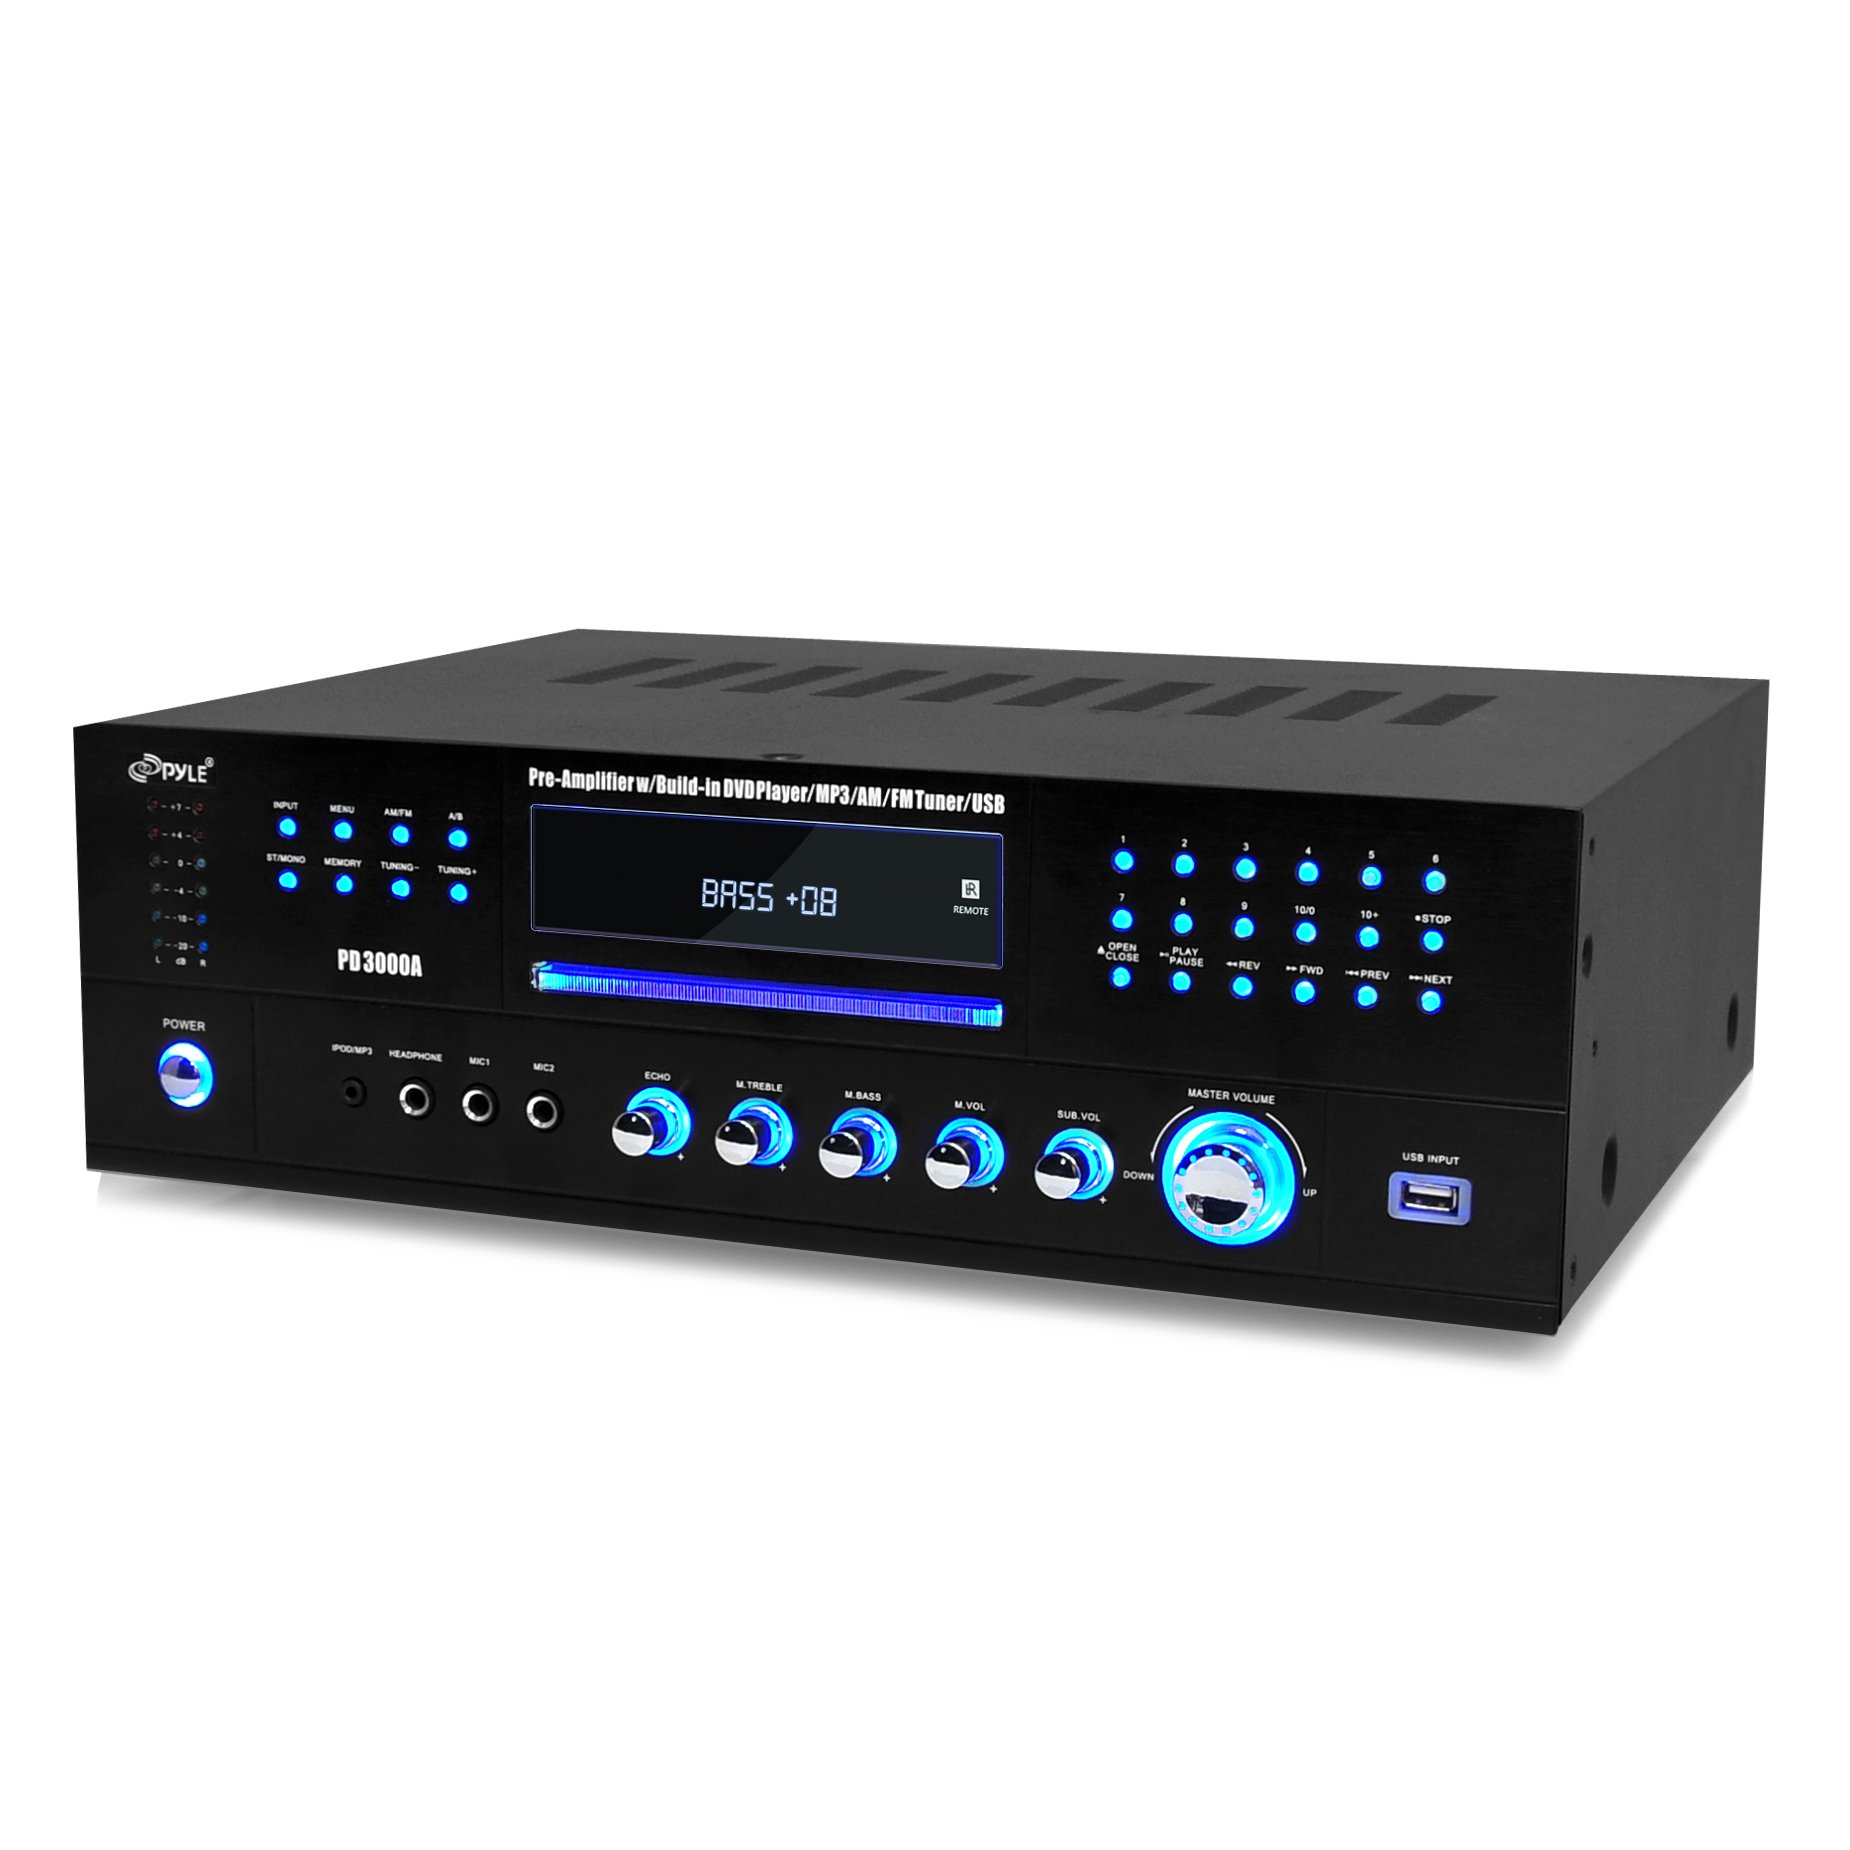 Pyle Home Theater Preamplifier Receiver, Audio/Video System, CD/DVD Player, AM/FM Radio, MP3/USB Reader, 3000 Watt by Pyle